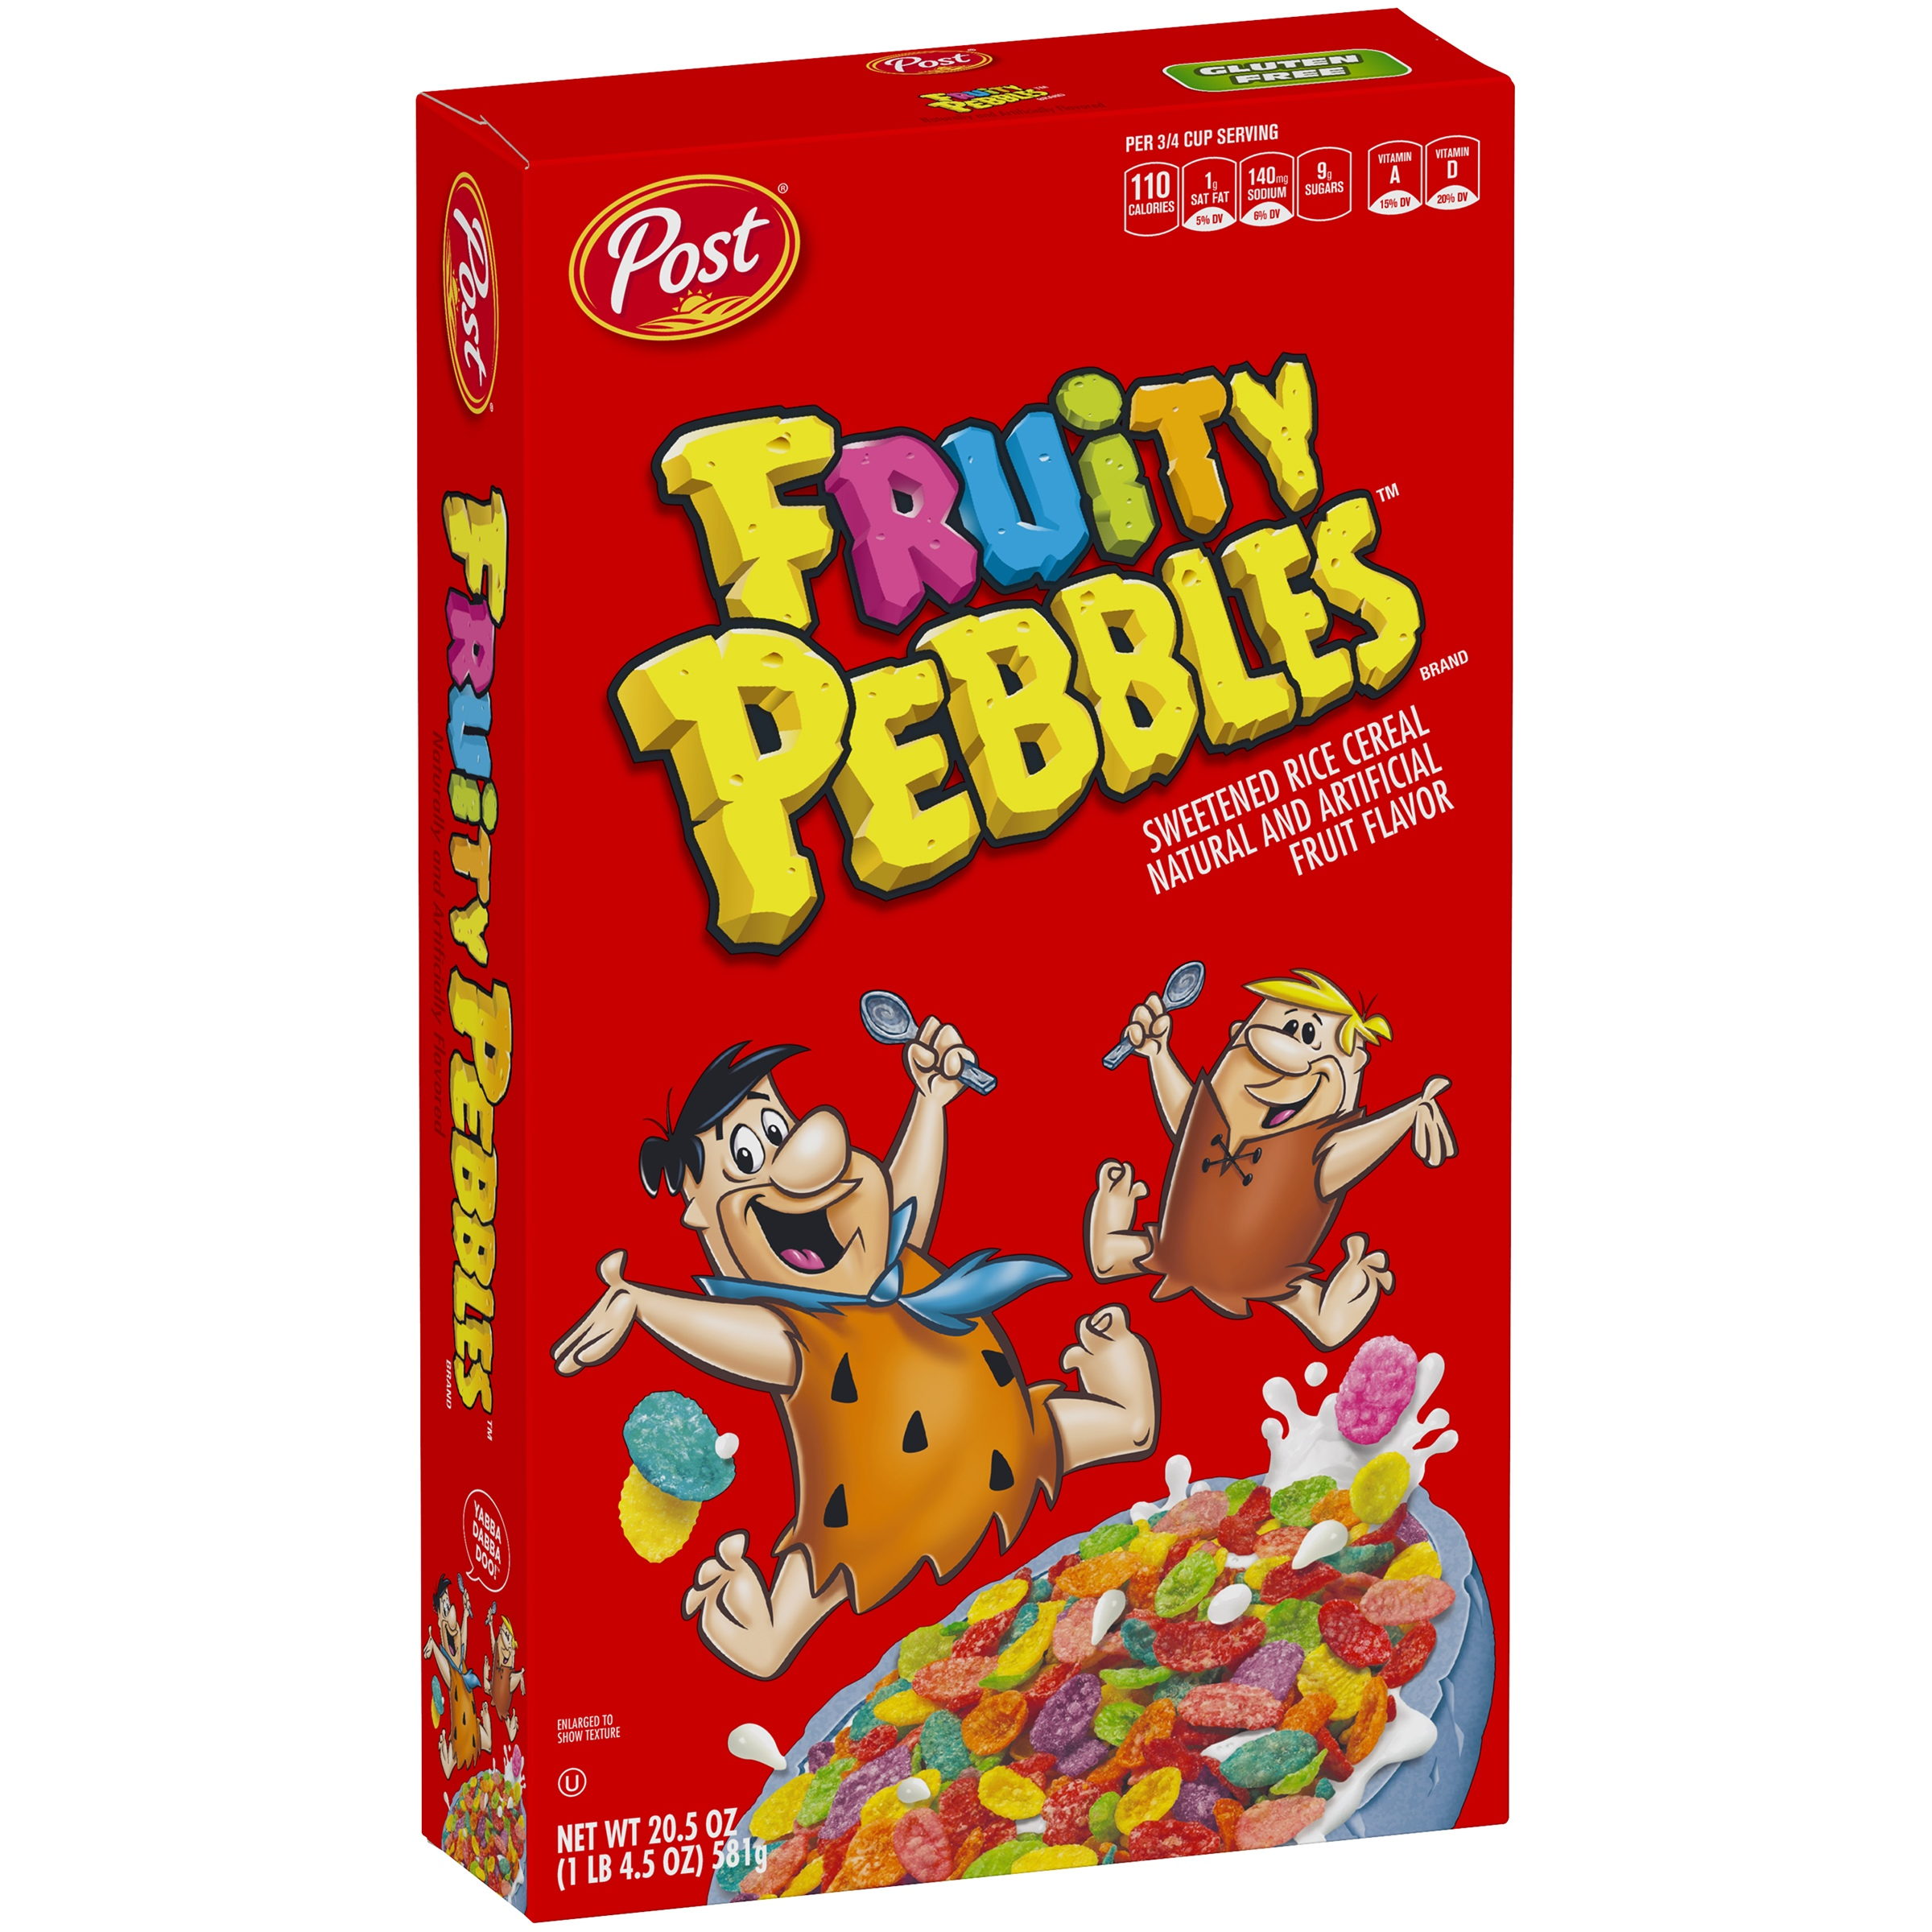 Post Fruity Pebbles Cereal 20.5 Oz. Box